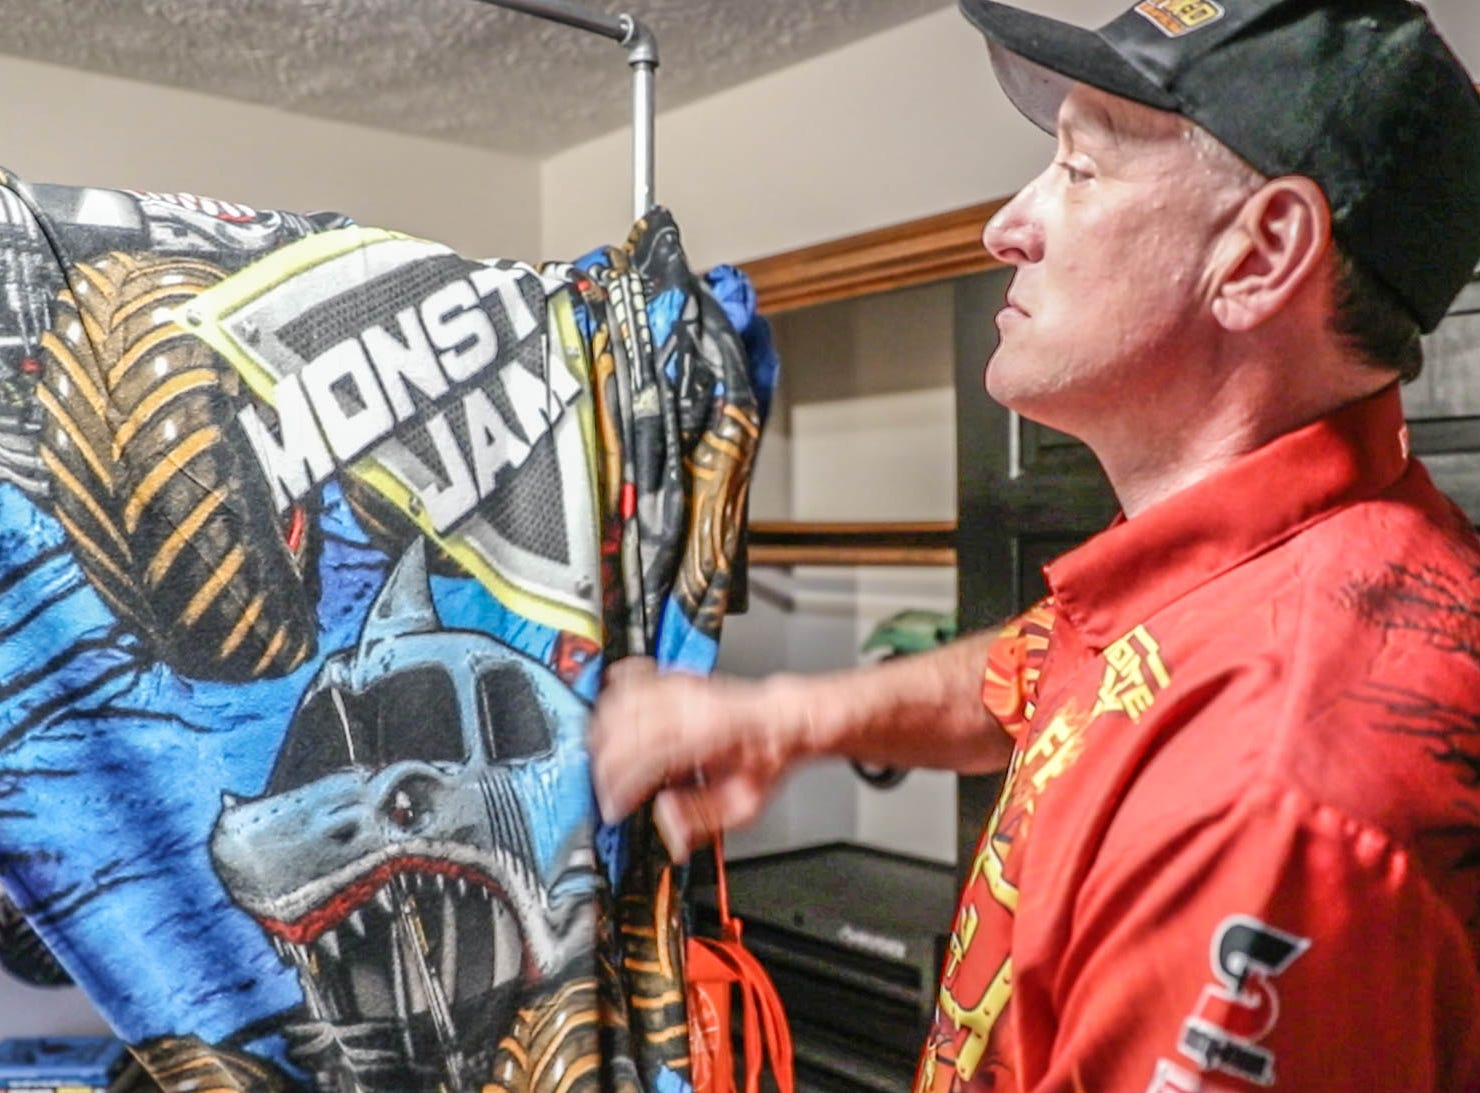 Maximum Destruction monster truck driver Tom Meents , shown here, shows James Egold, who just completed chemo therapy, his newly remodeled Monster Jam bedroom on Thursday, Feb. 7, 2019. The remodel was thanks to a team up by Monster Jam, Love Your Melon, and Home Depot.